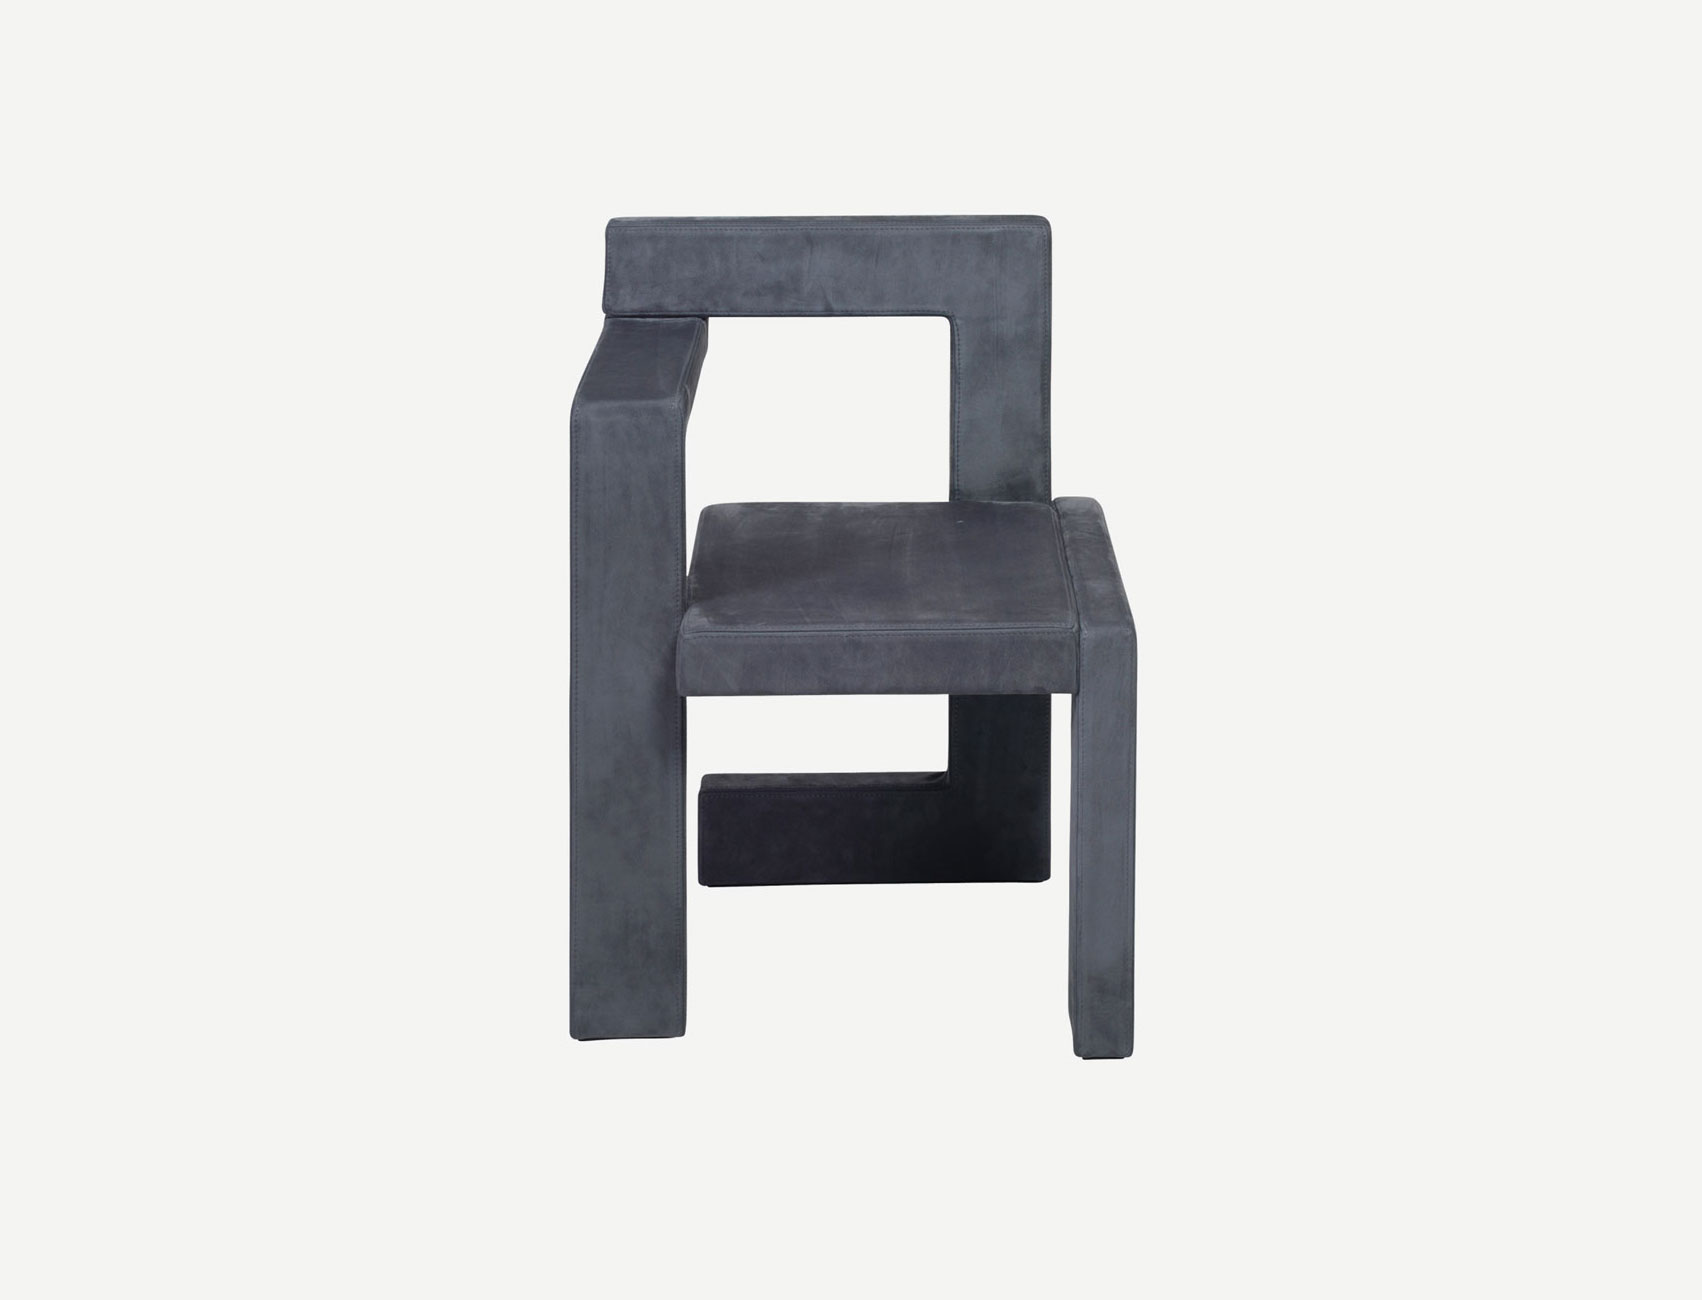 Steltman Chair 1963 by Gerrit Rietveld featured in Chair 500 Designs That Matter